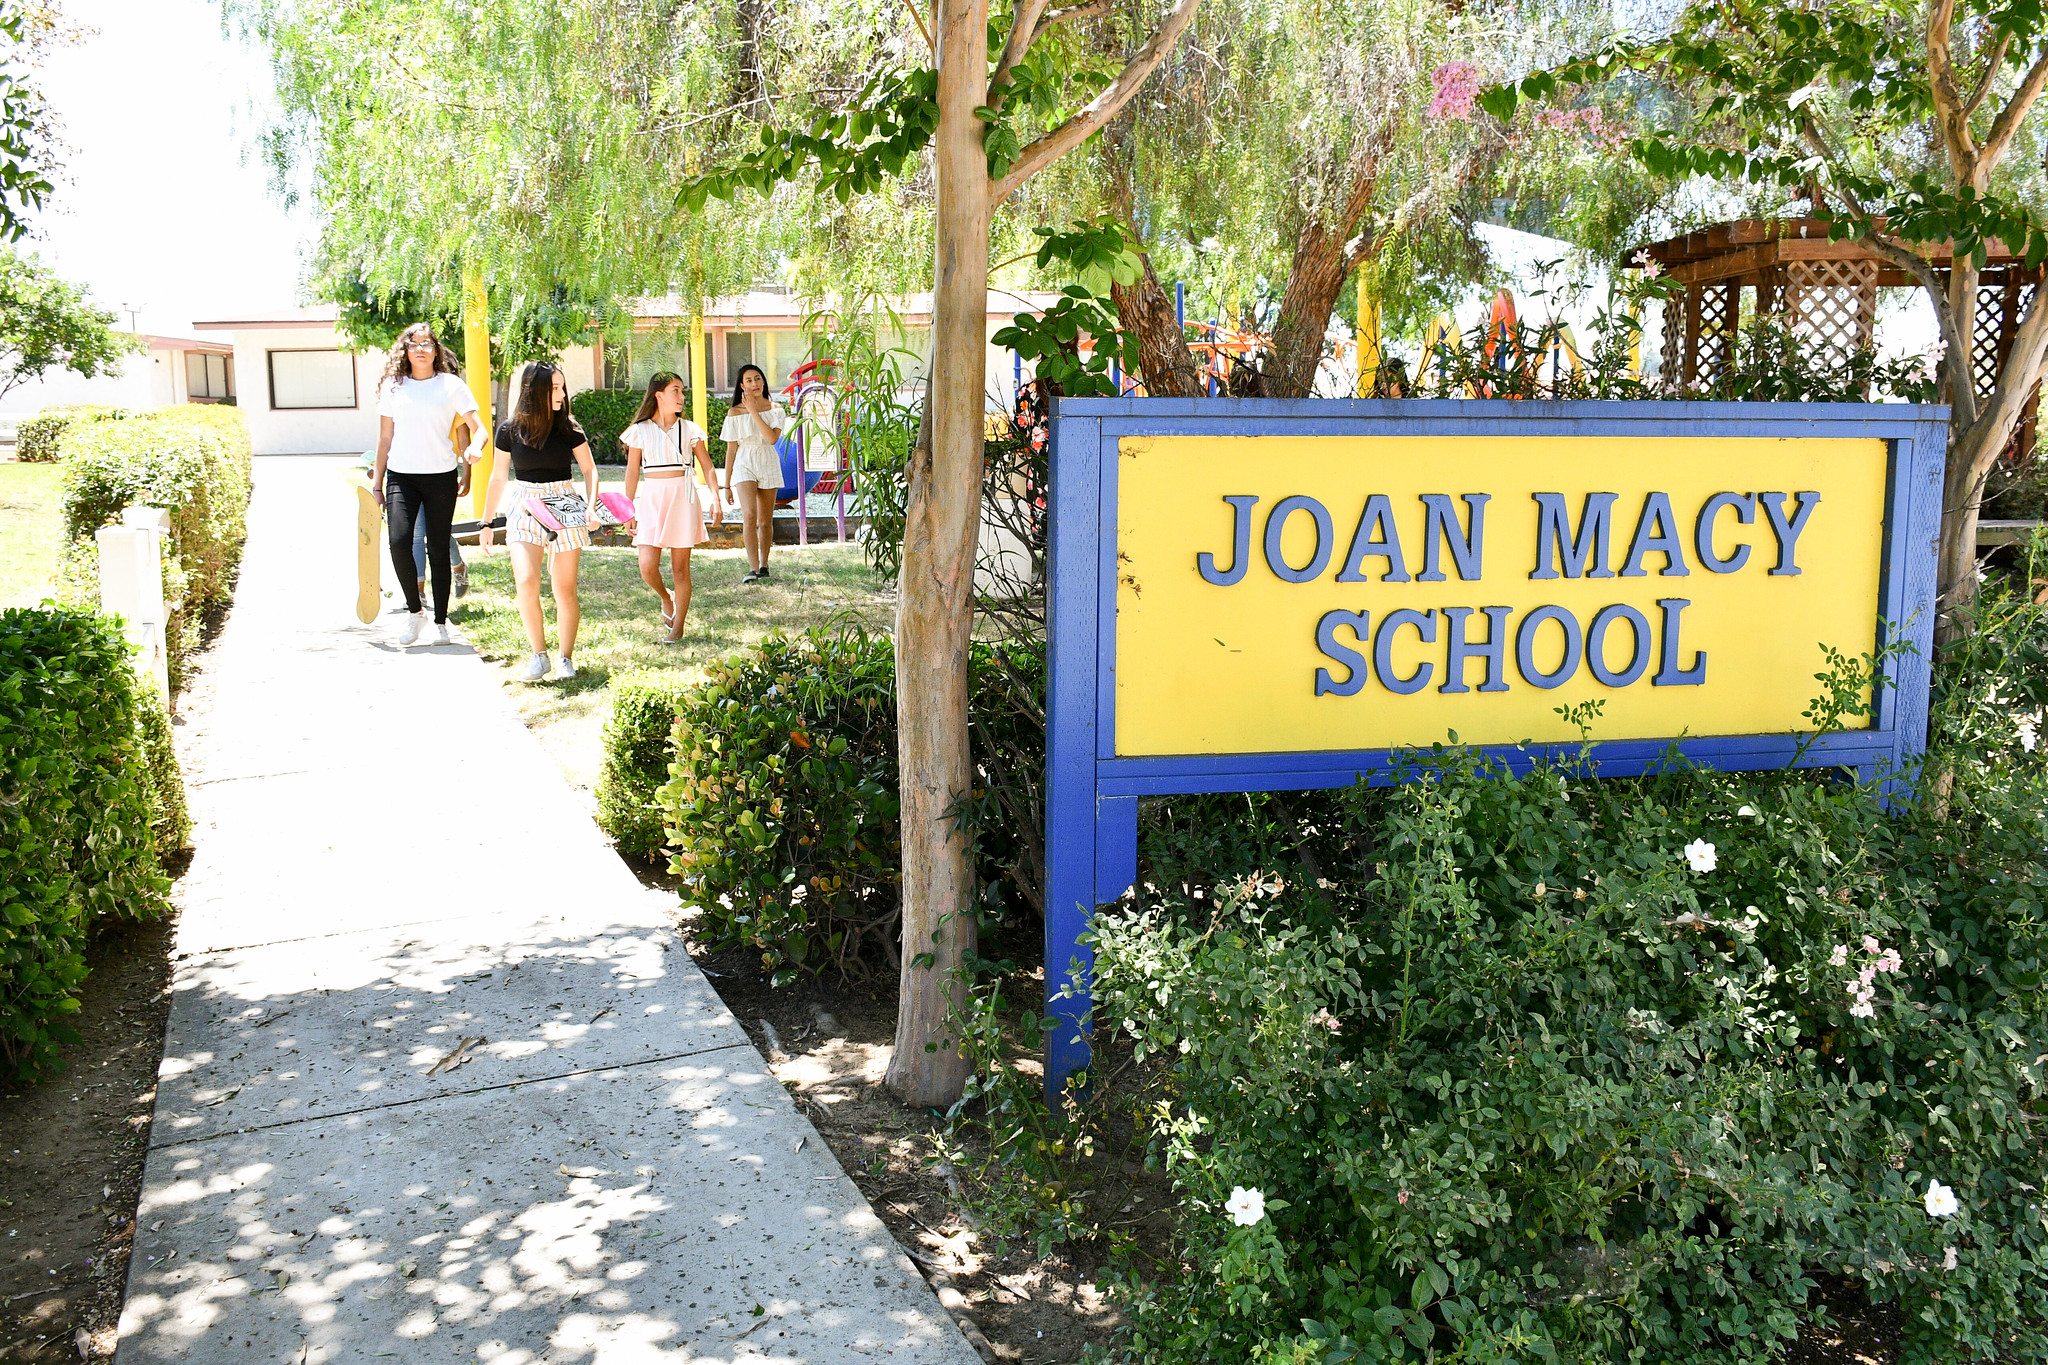 Joan Macy School Makes Learning Fun